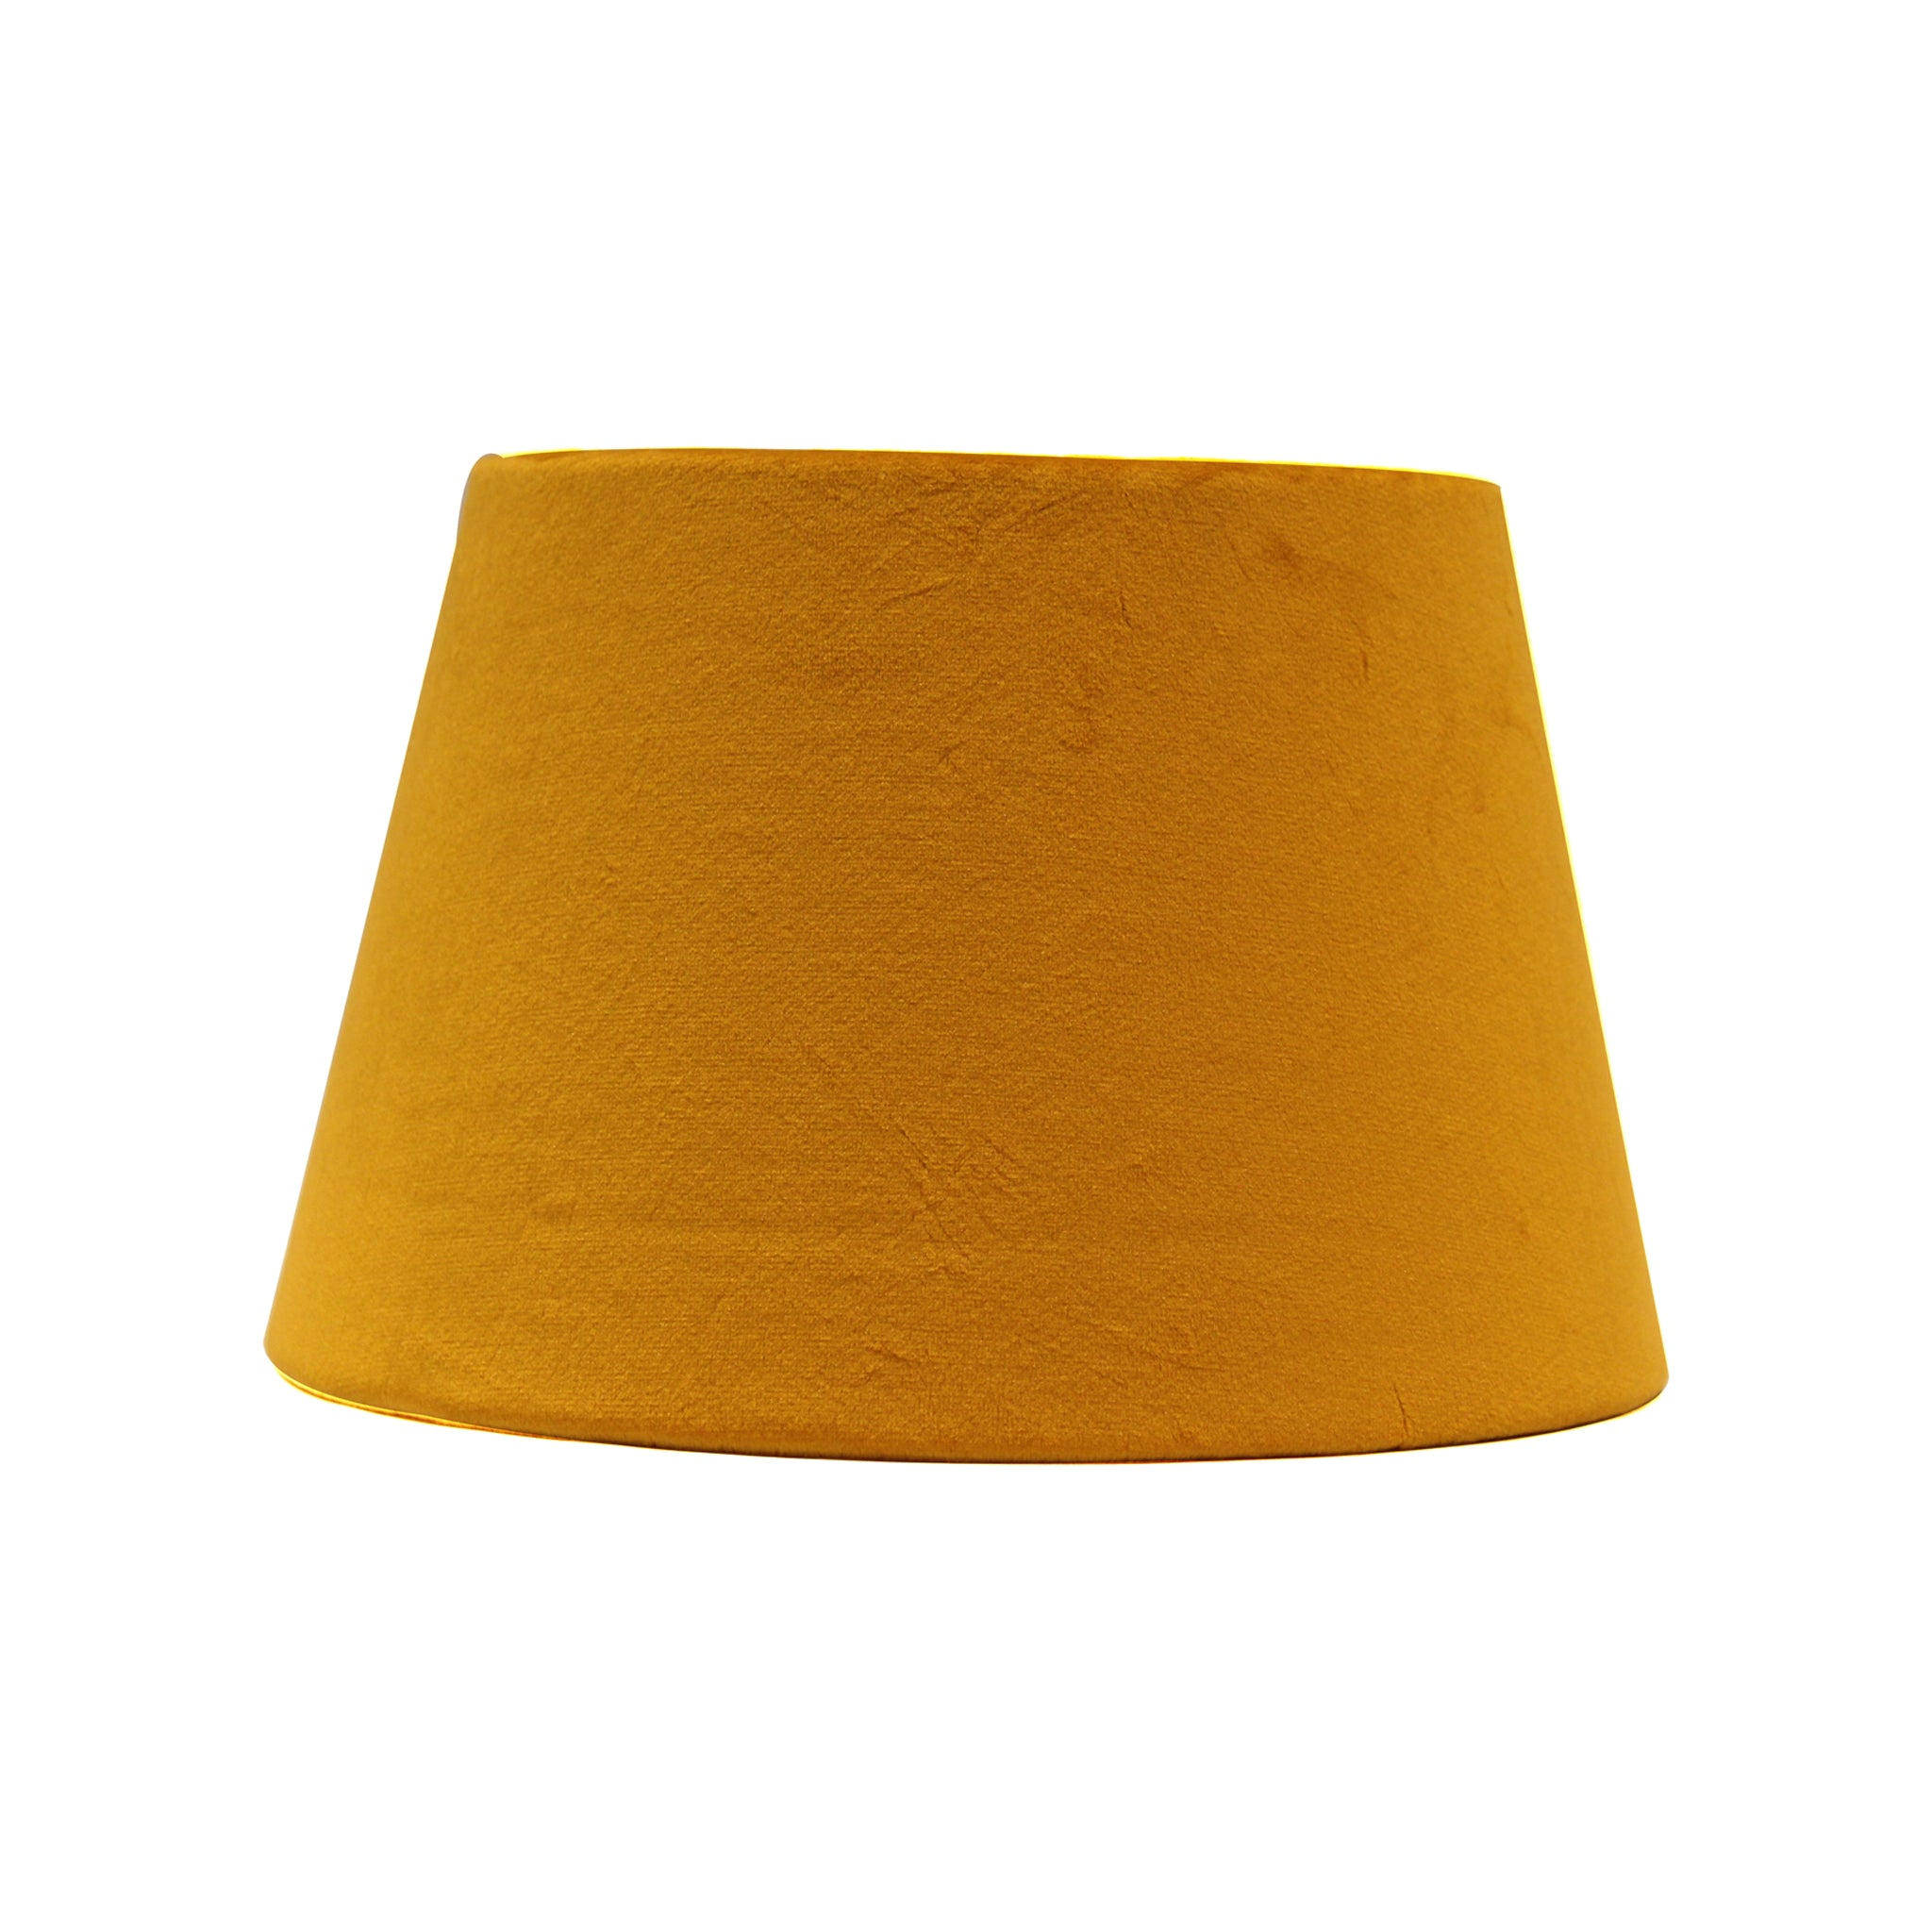 Yellow velvet lampshade